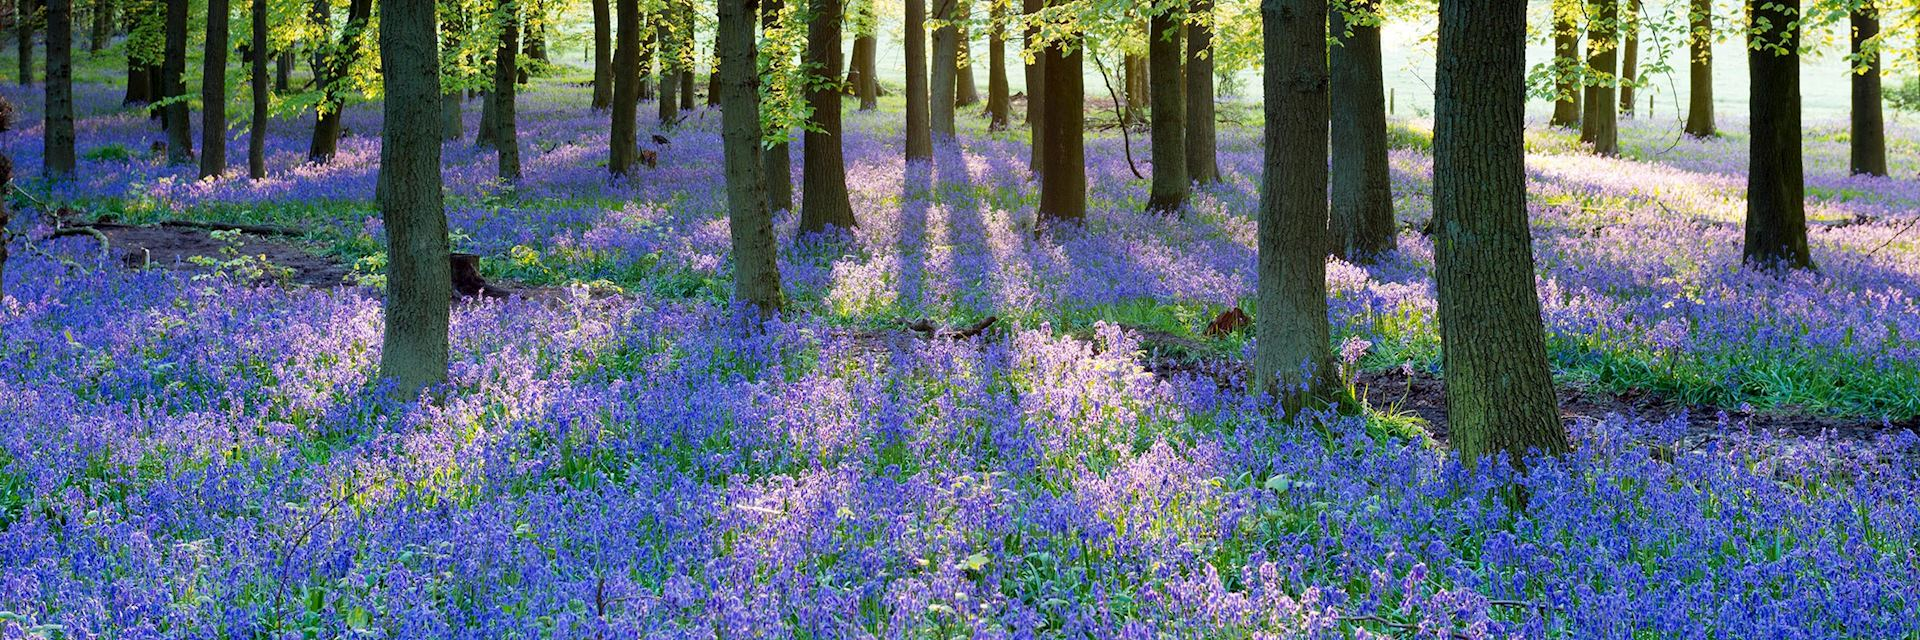 Bluebell wood, England